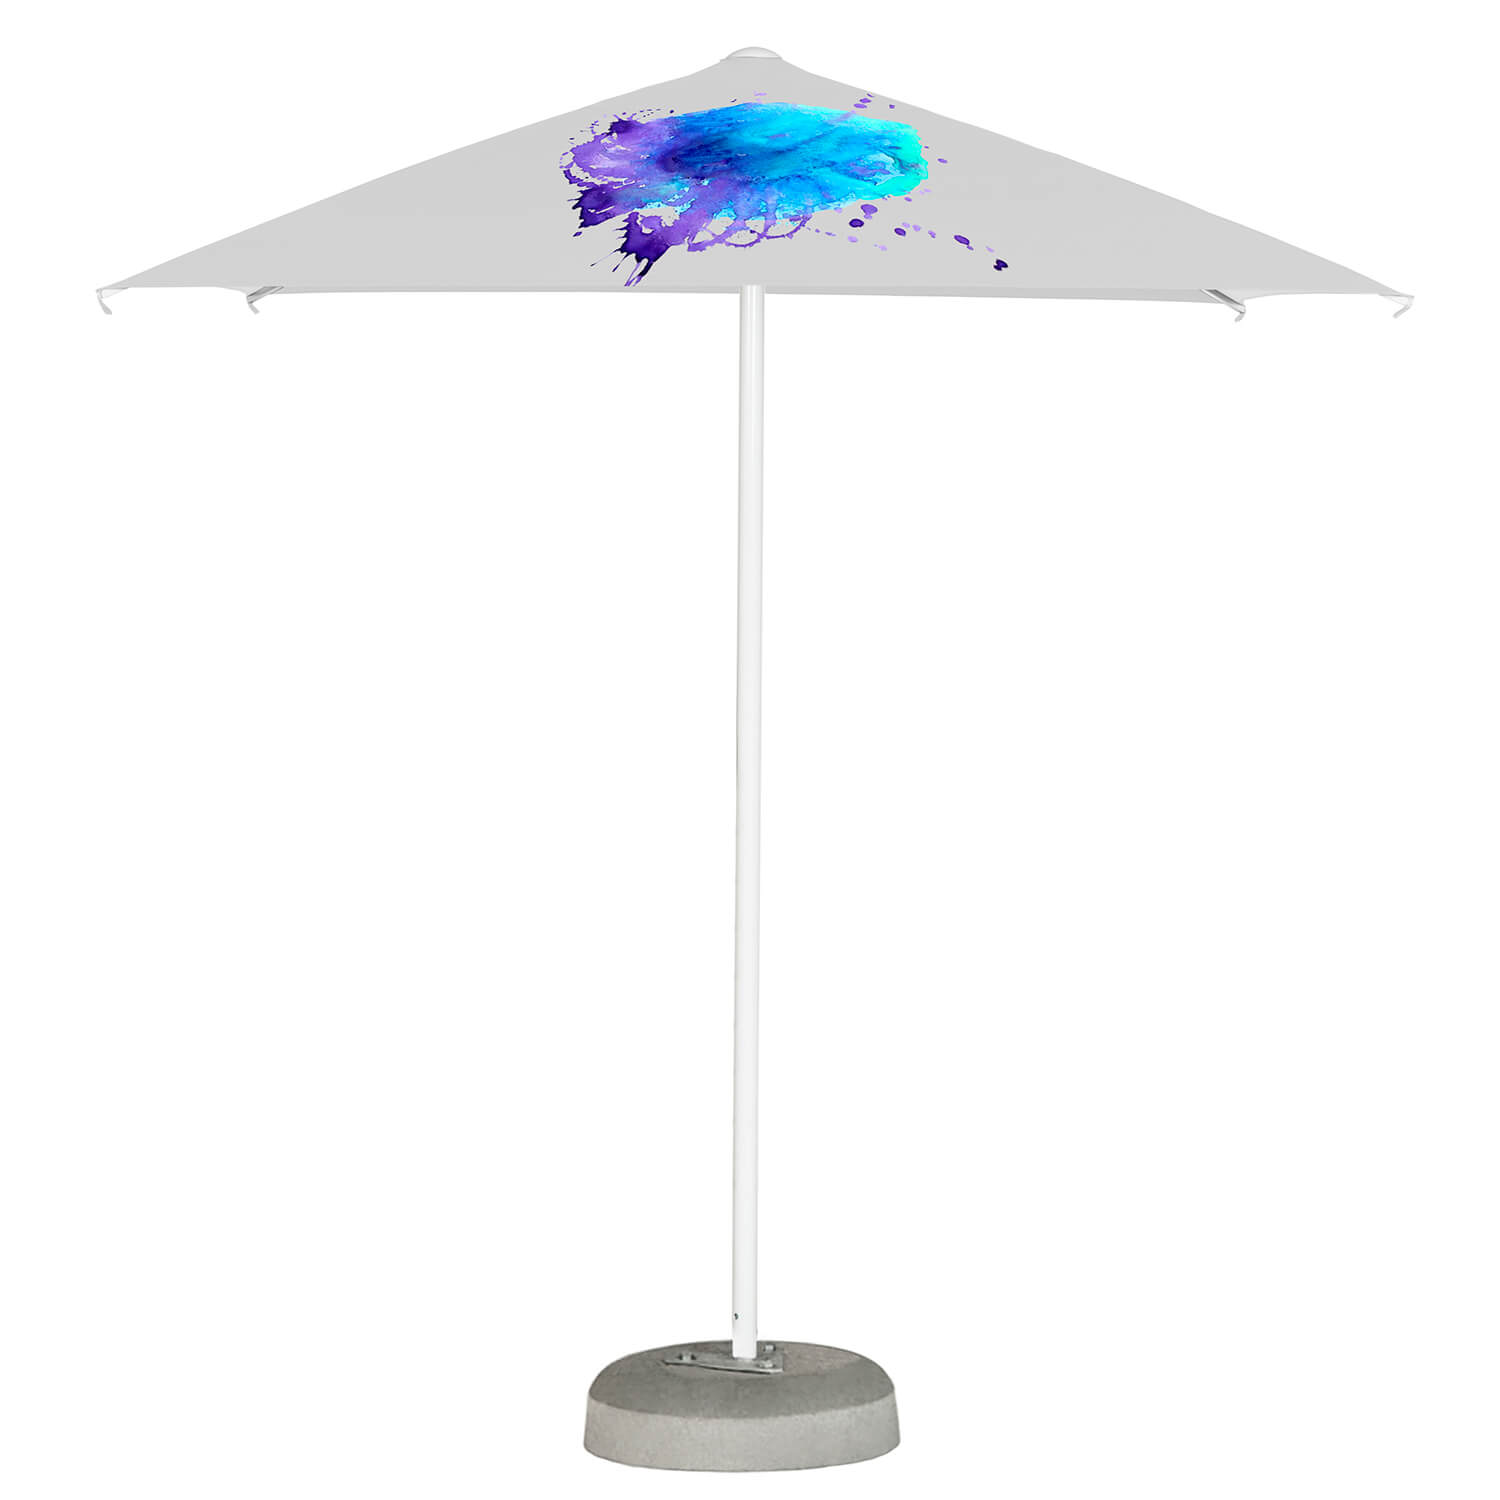 Printed Parasols Small Aluminium 2m x 2m without valance